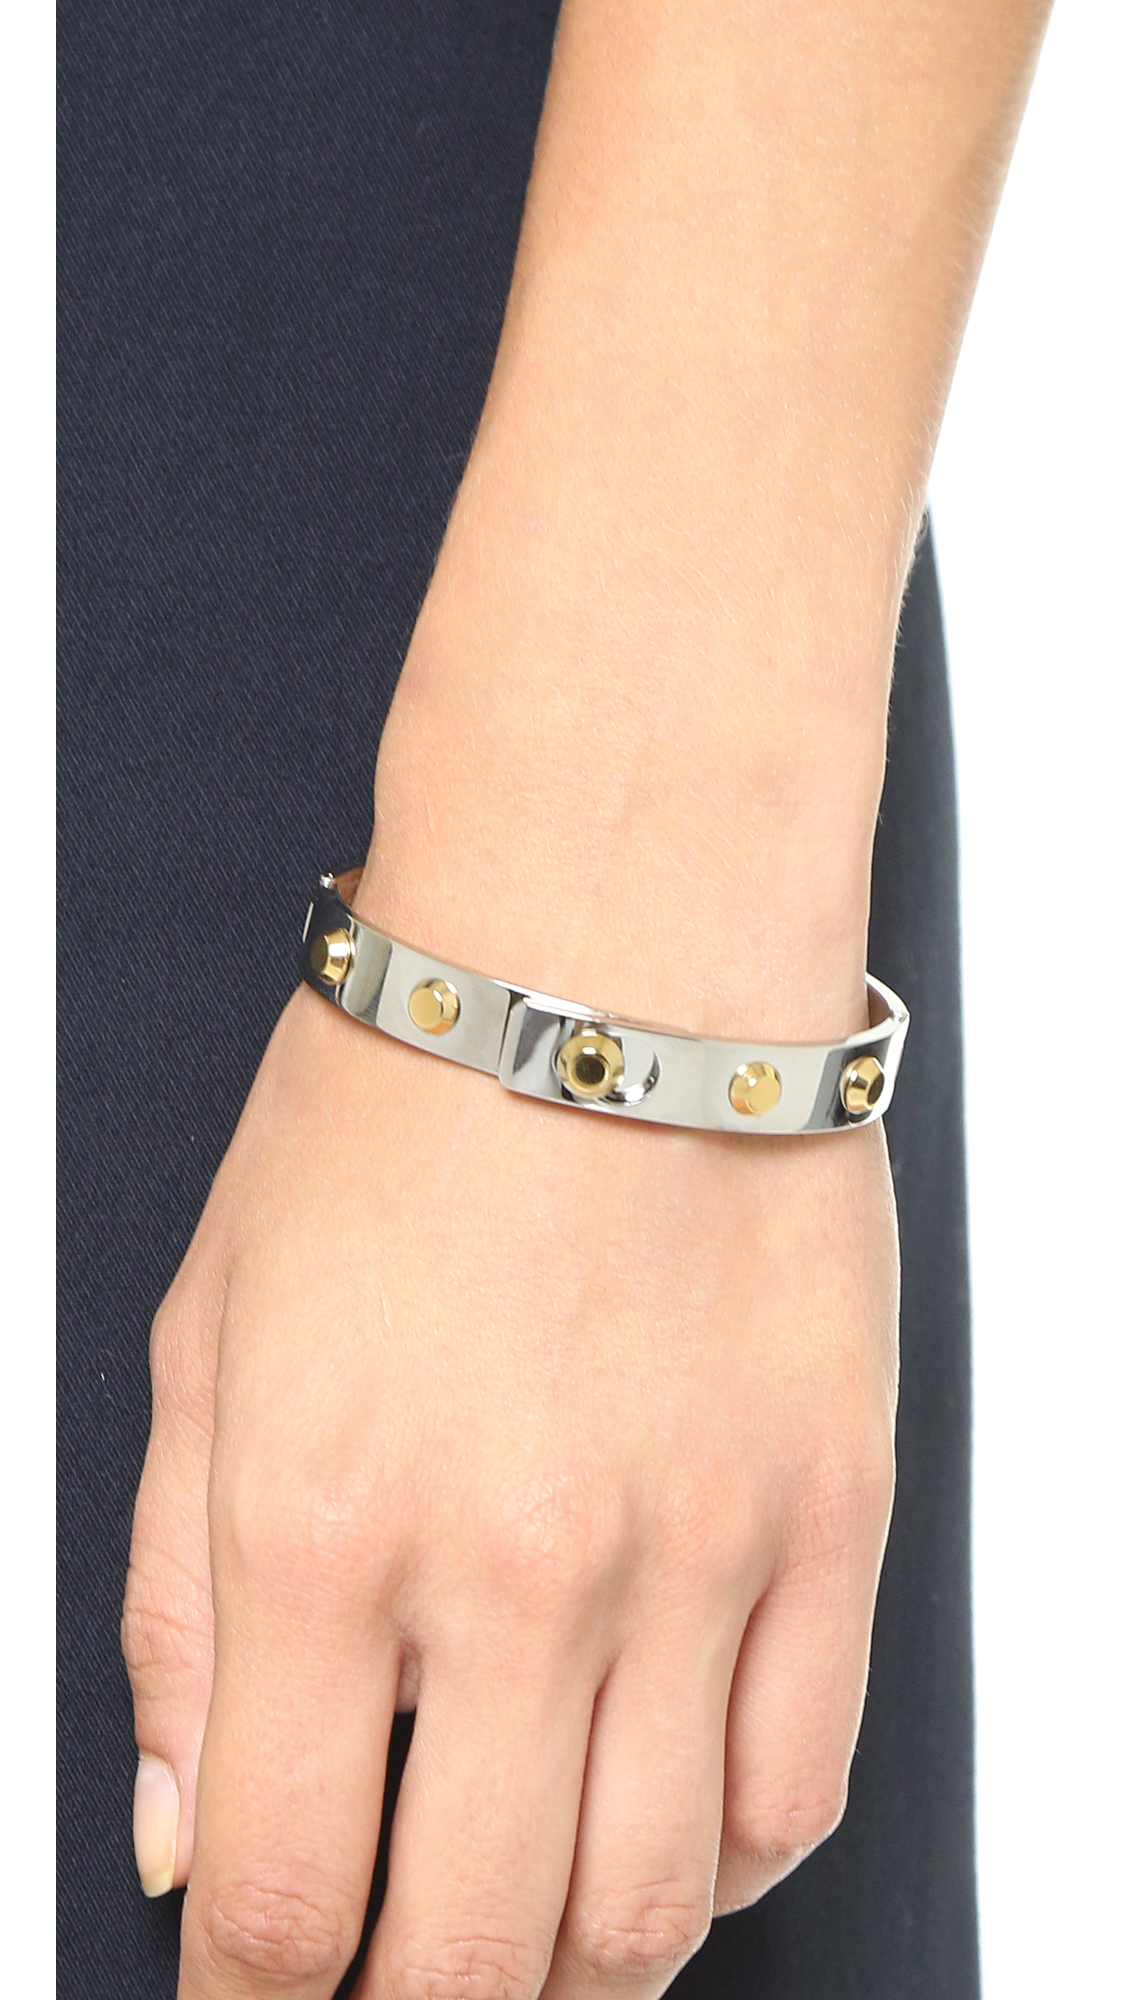 tone bangles hinged dp hinge com pave rose bracelet bangle gold michael jewelry amazon kors